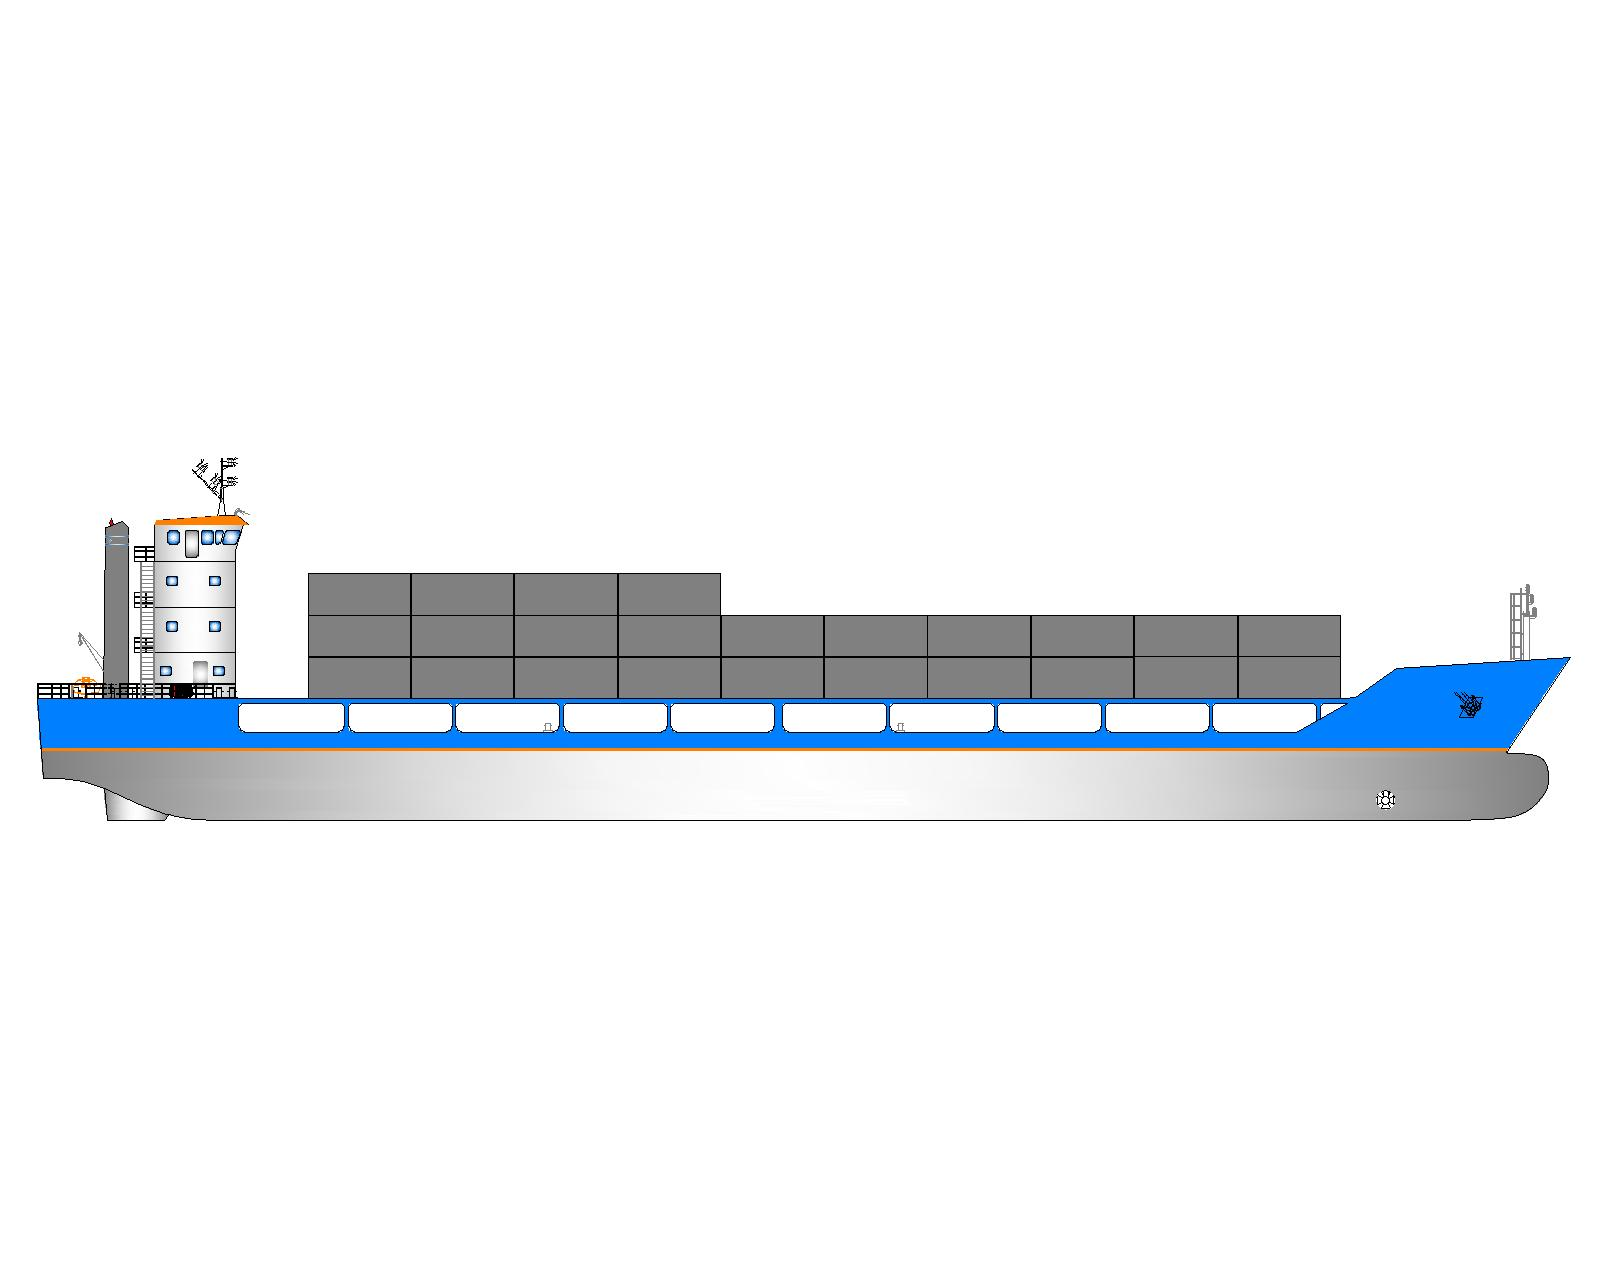 hight resolution of 200teu container vessel